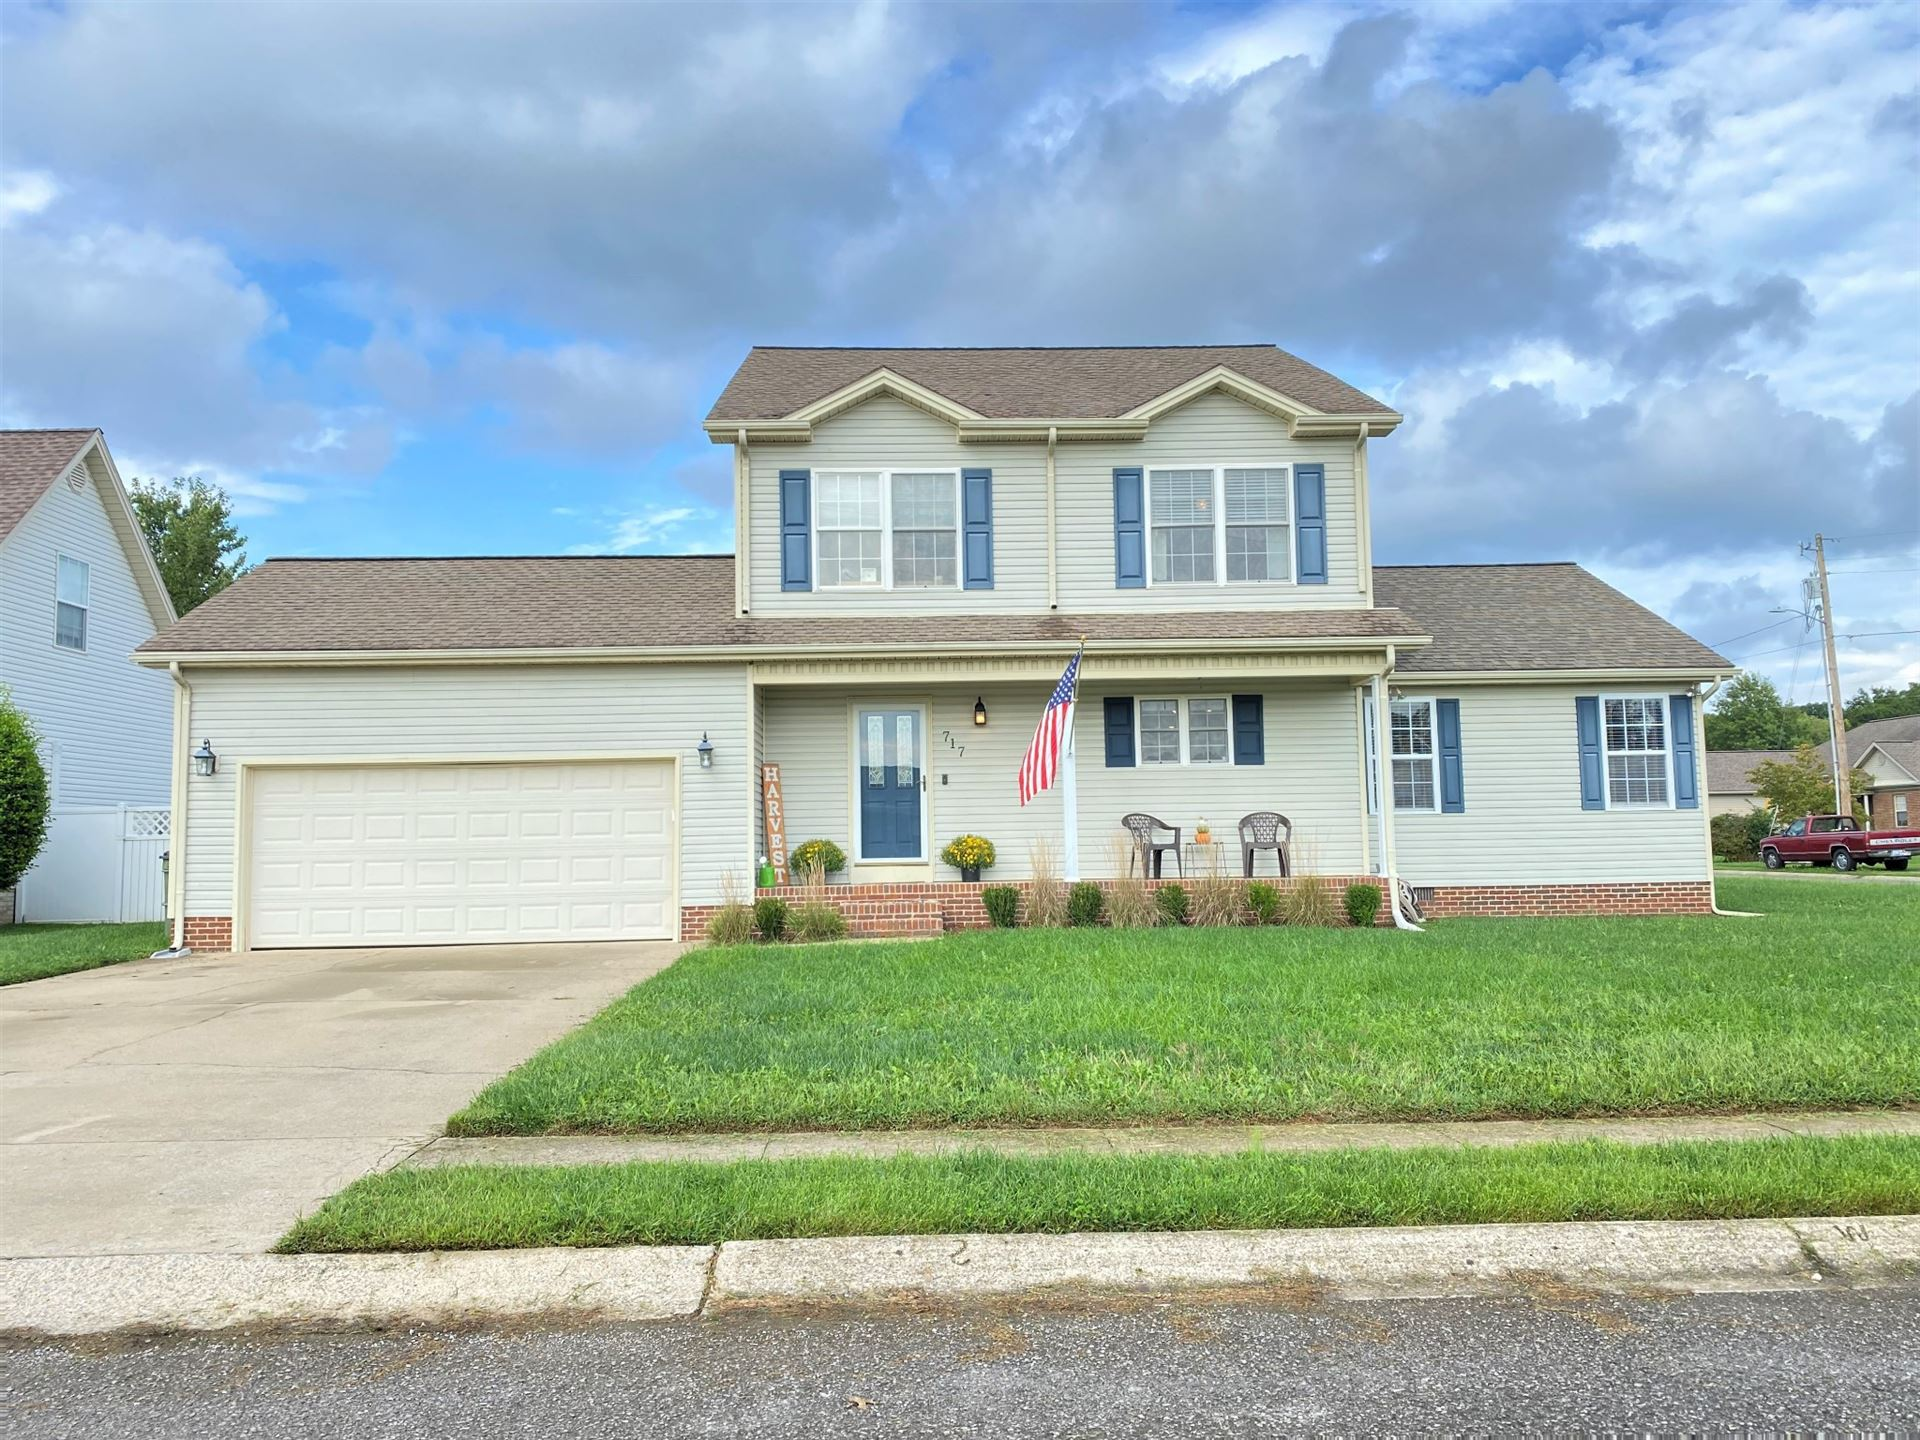 717 Claw Ct, Hopkinsville, KY 42240 - MLS#: 2293173